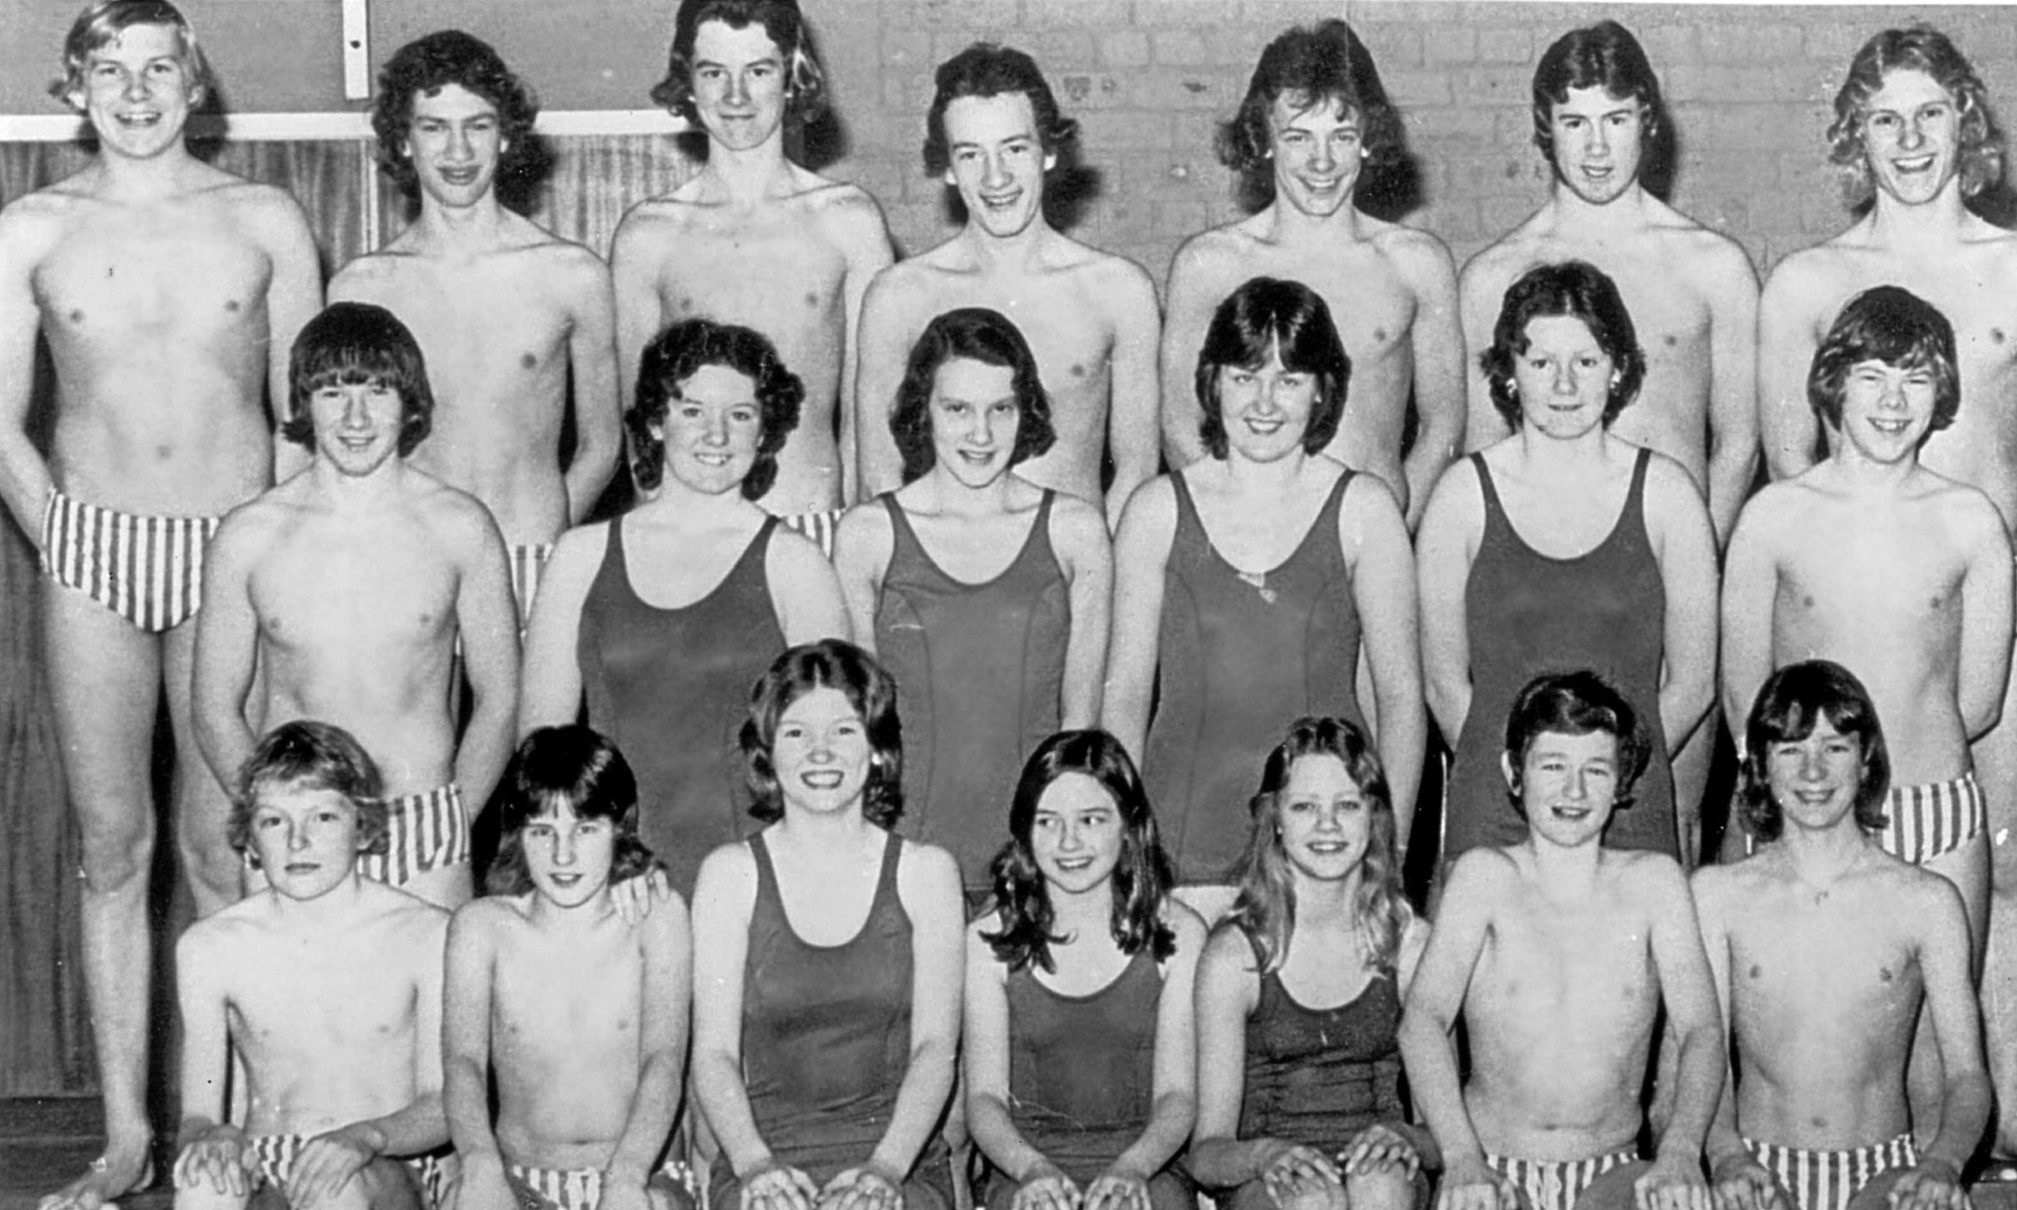 Menzieshill were World Relay champions in 1974.